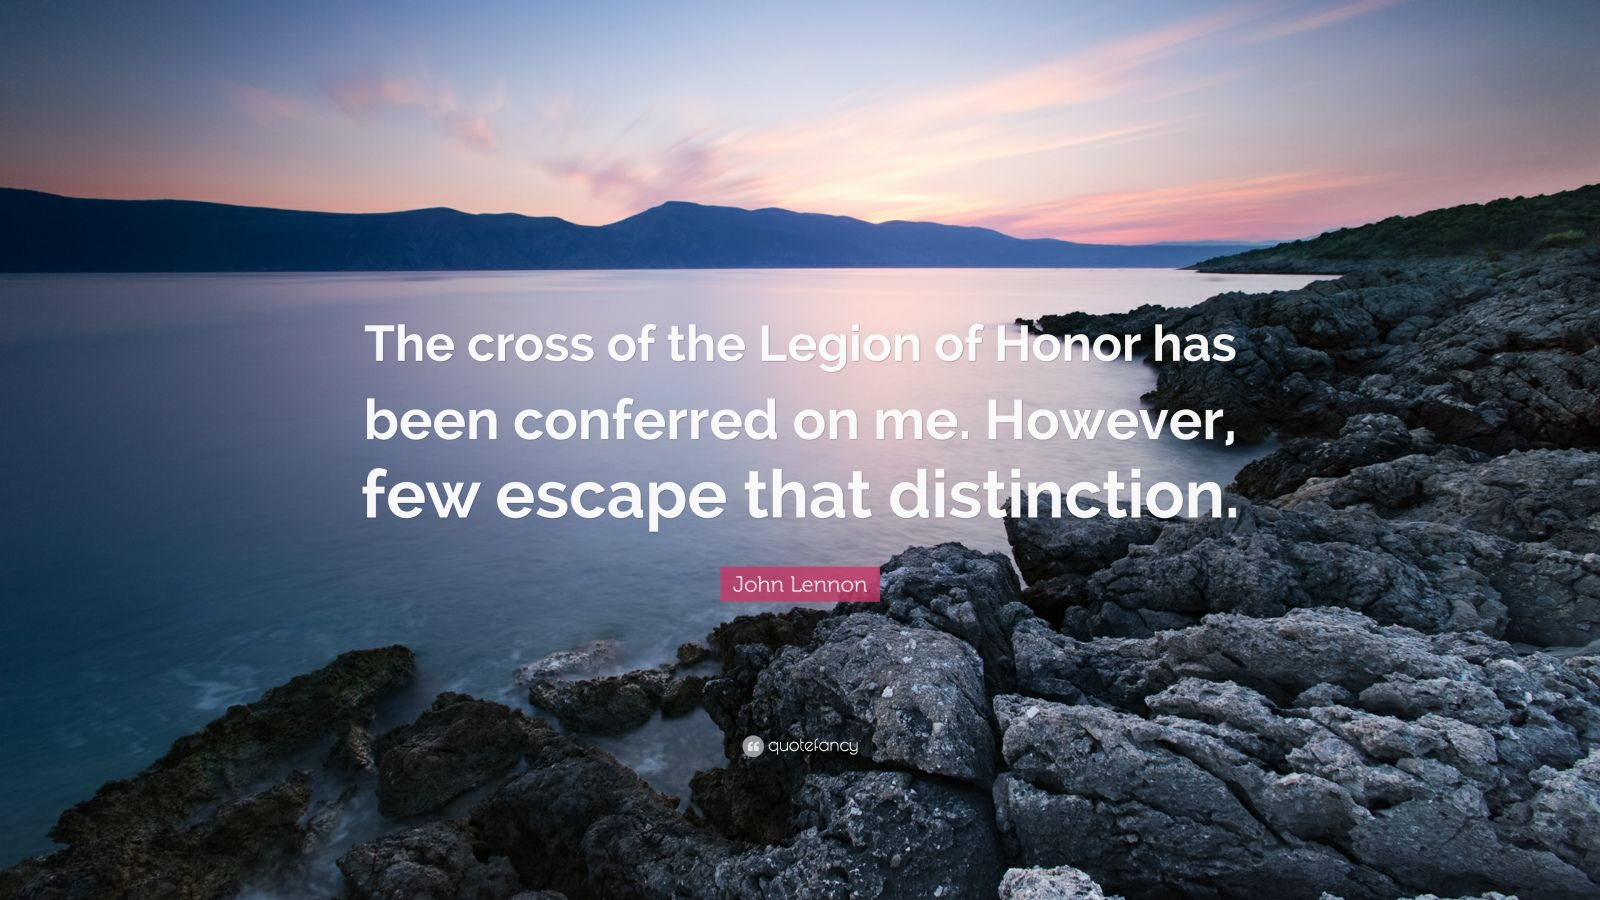 """John Lennon Quote: """"The cross of the Legion of Honor has been conferred on me. However, few escape that distinction."""""""